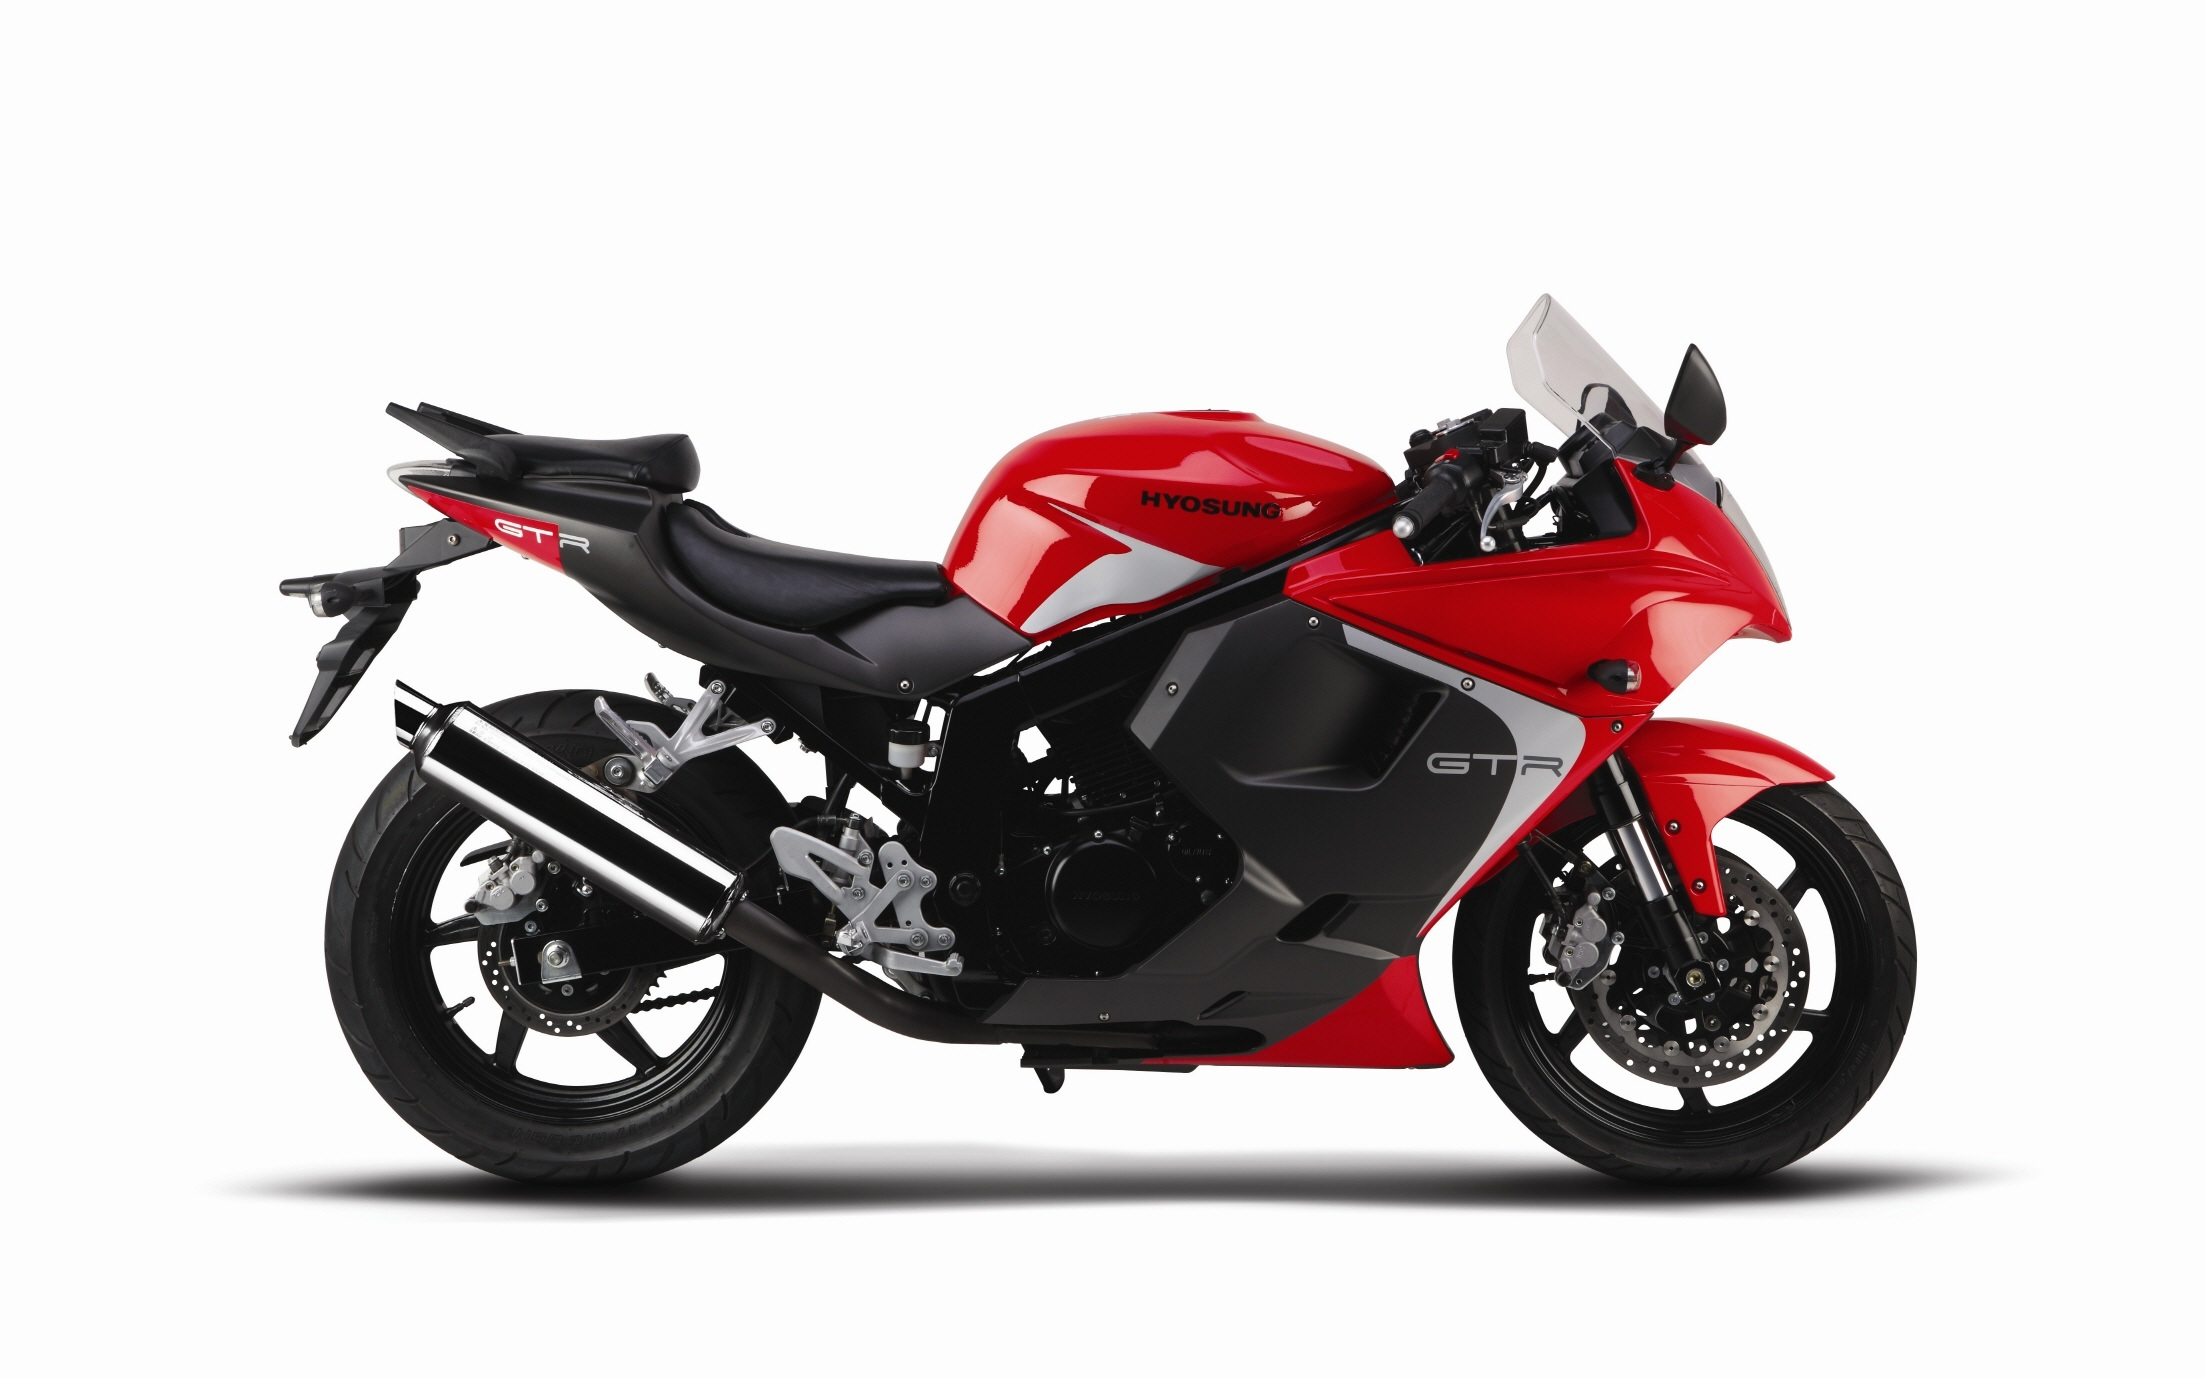 Hyosung registers strong sales numbers